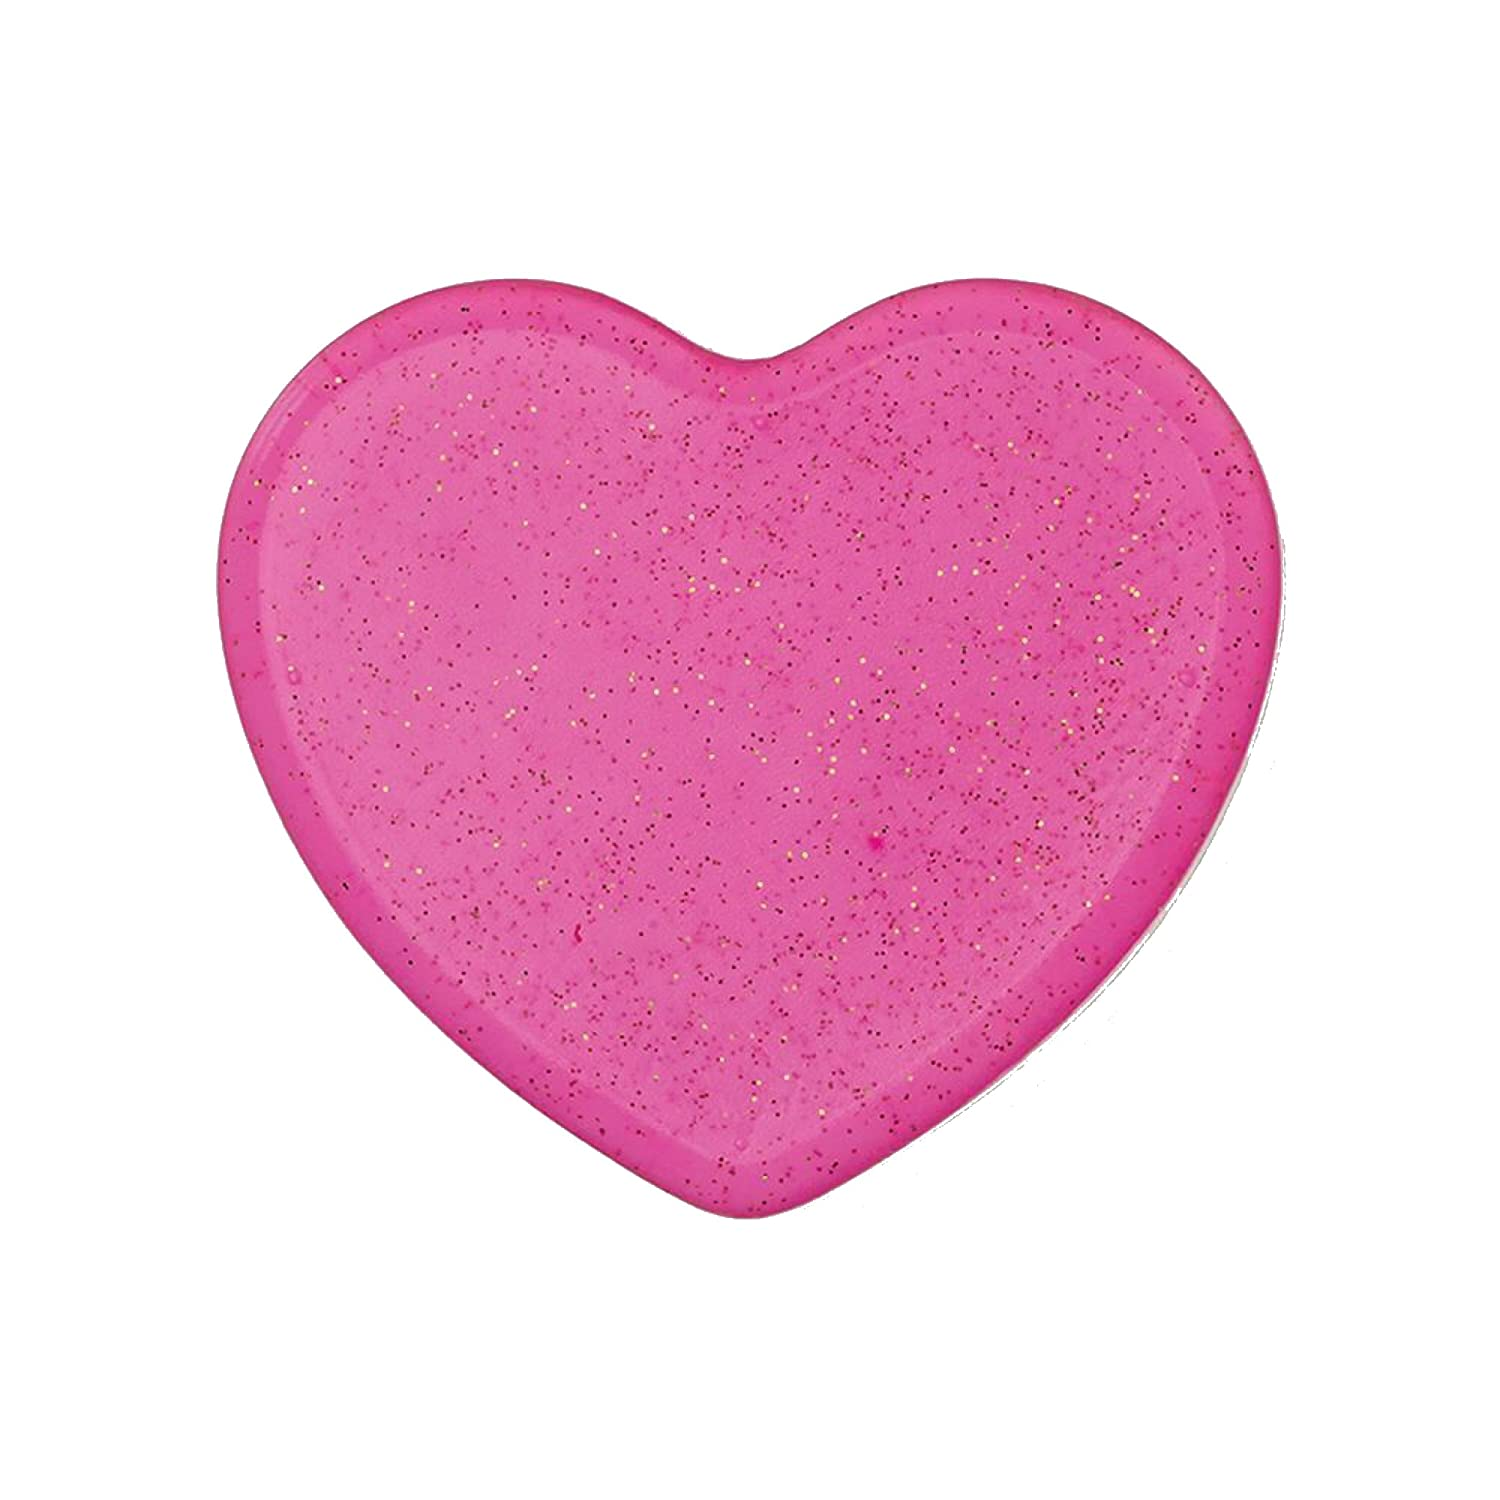 Lexi Noel Beauty Silicone Makeup Sponge Wet/Dry Silicone Makeup Applicator for Liquid/Powder Foundation, Reusable and Washable Silicone Beauty Blender (Pink Heart)